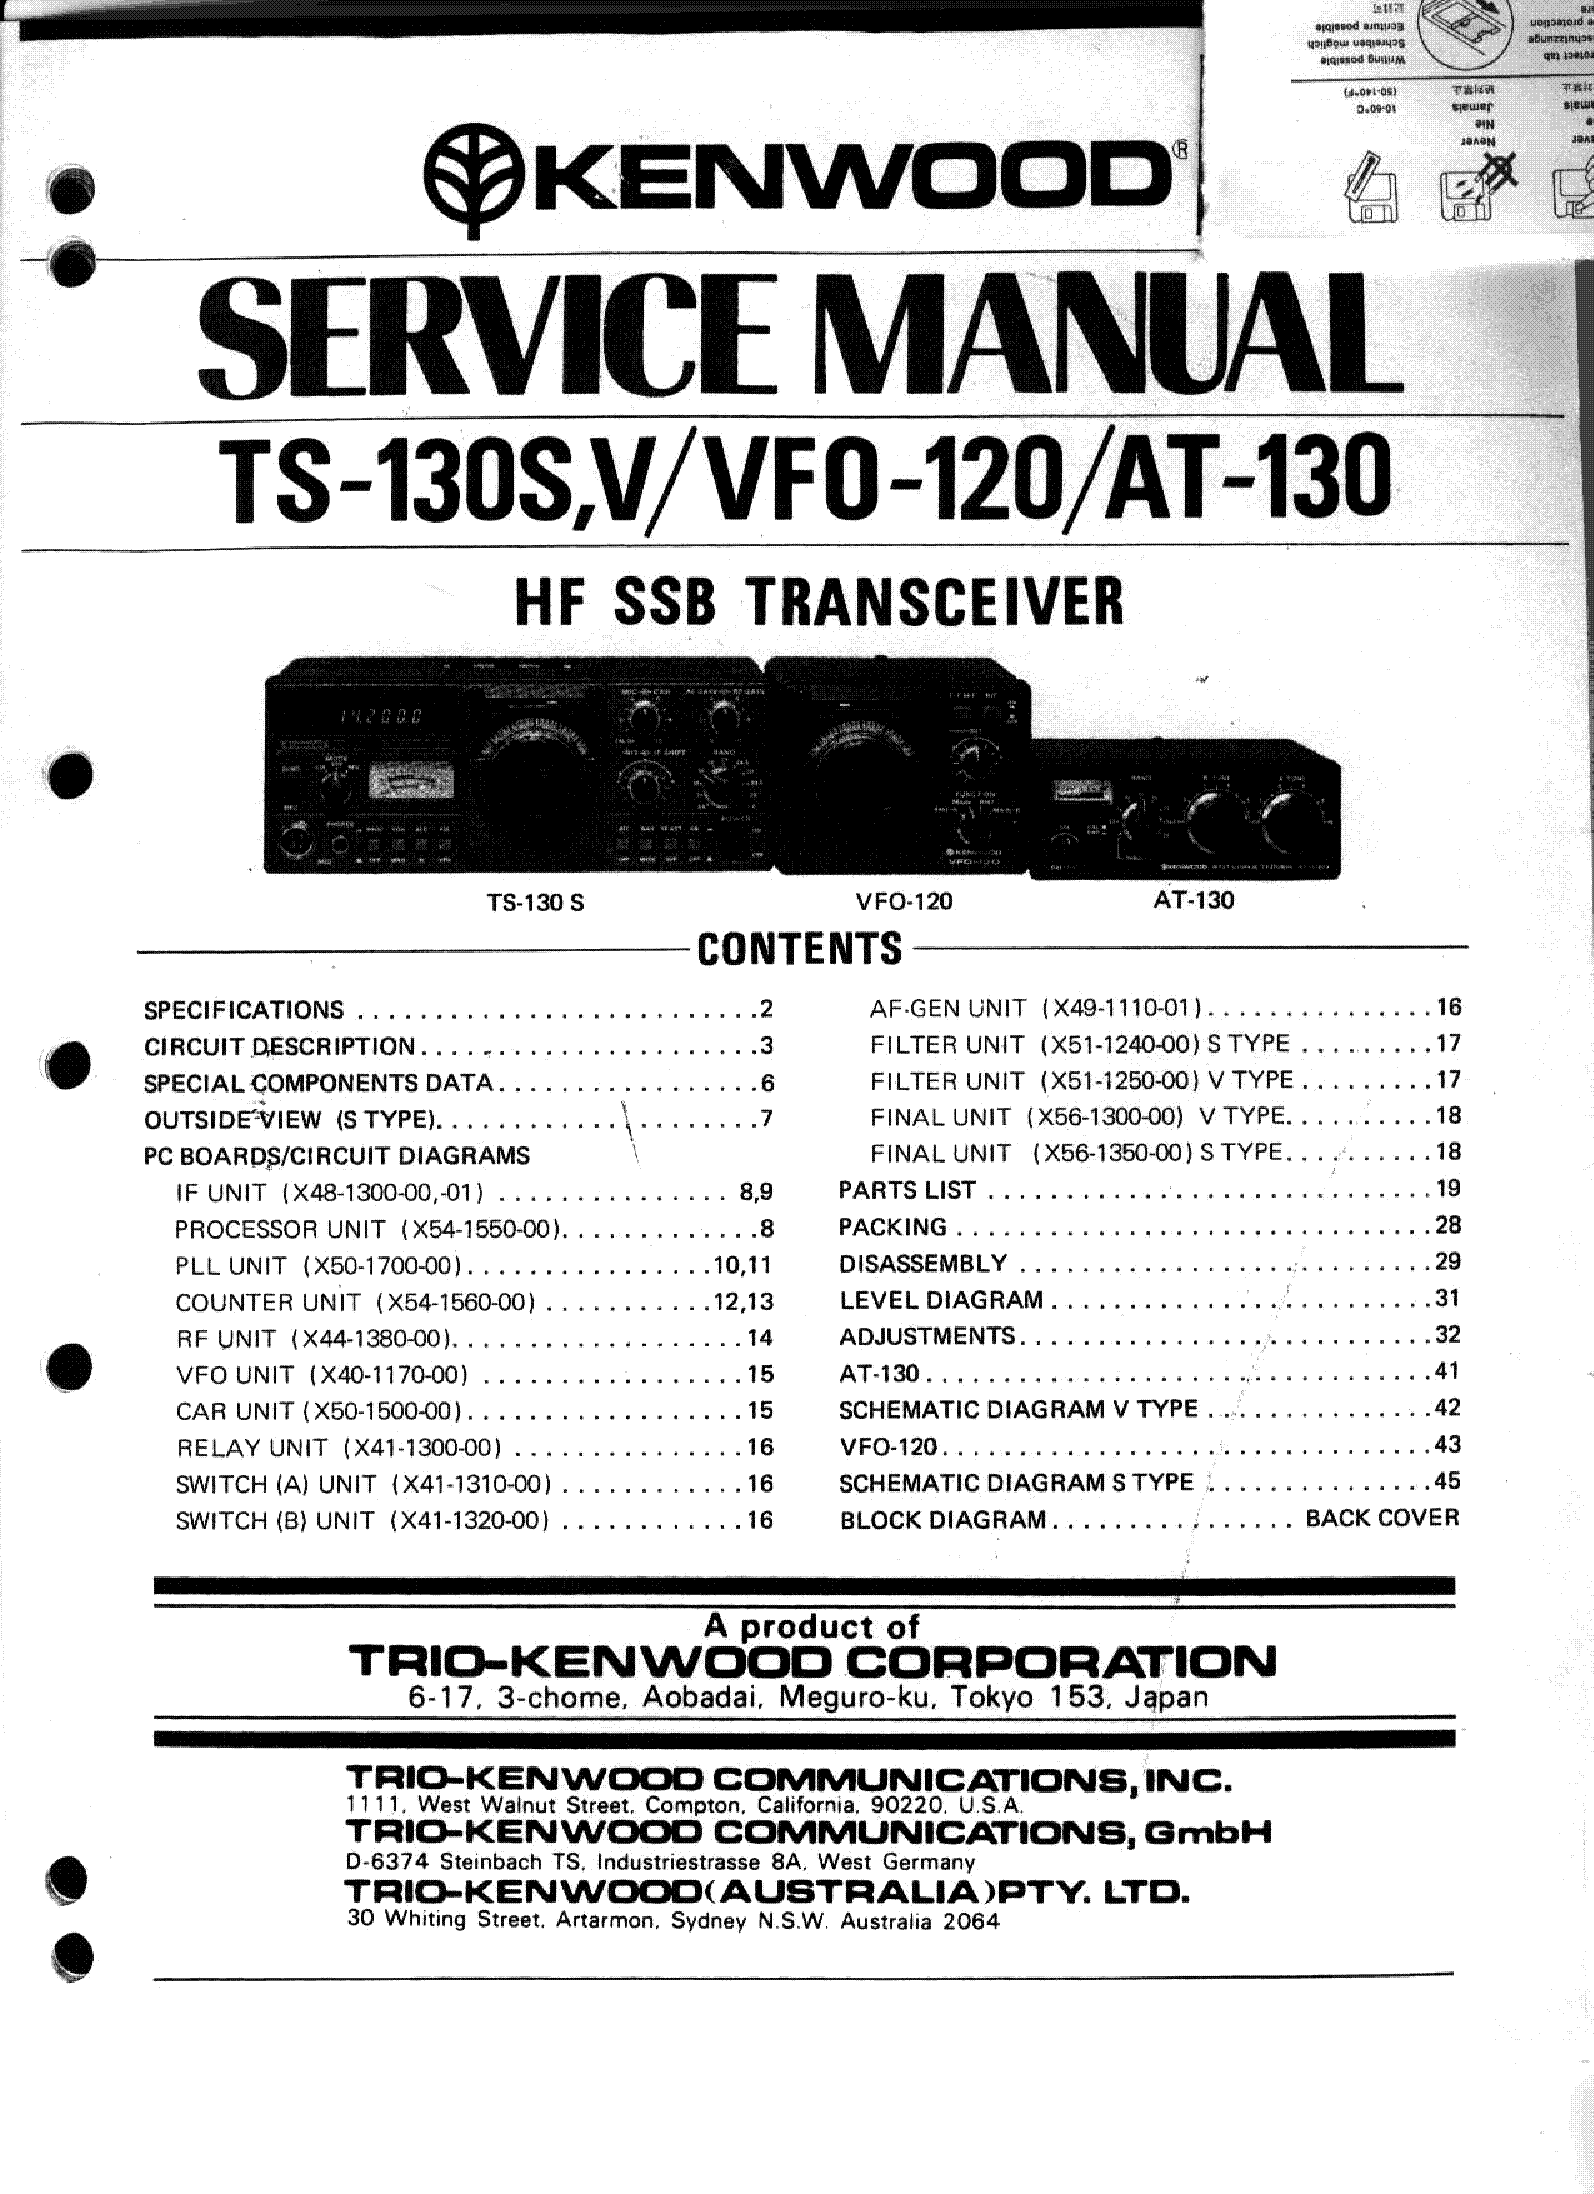 kenwood ts 130 service manual